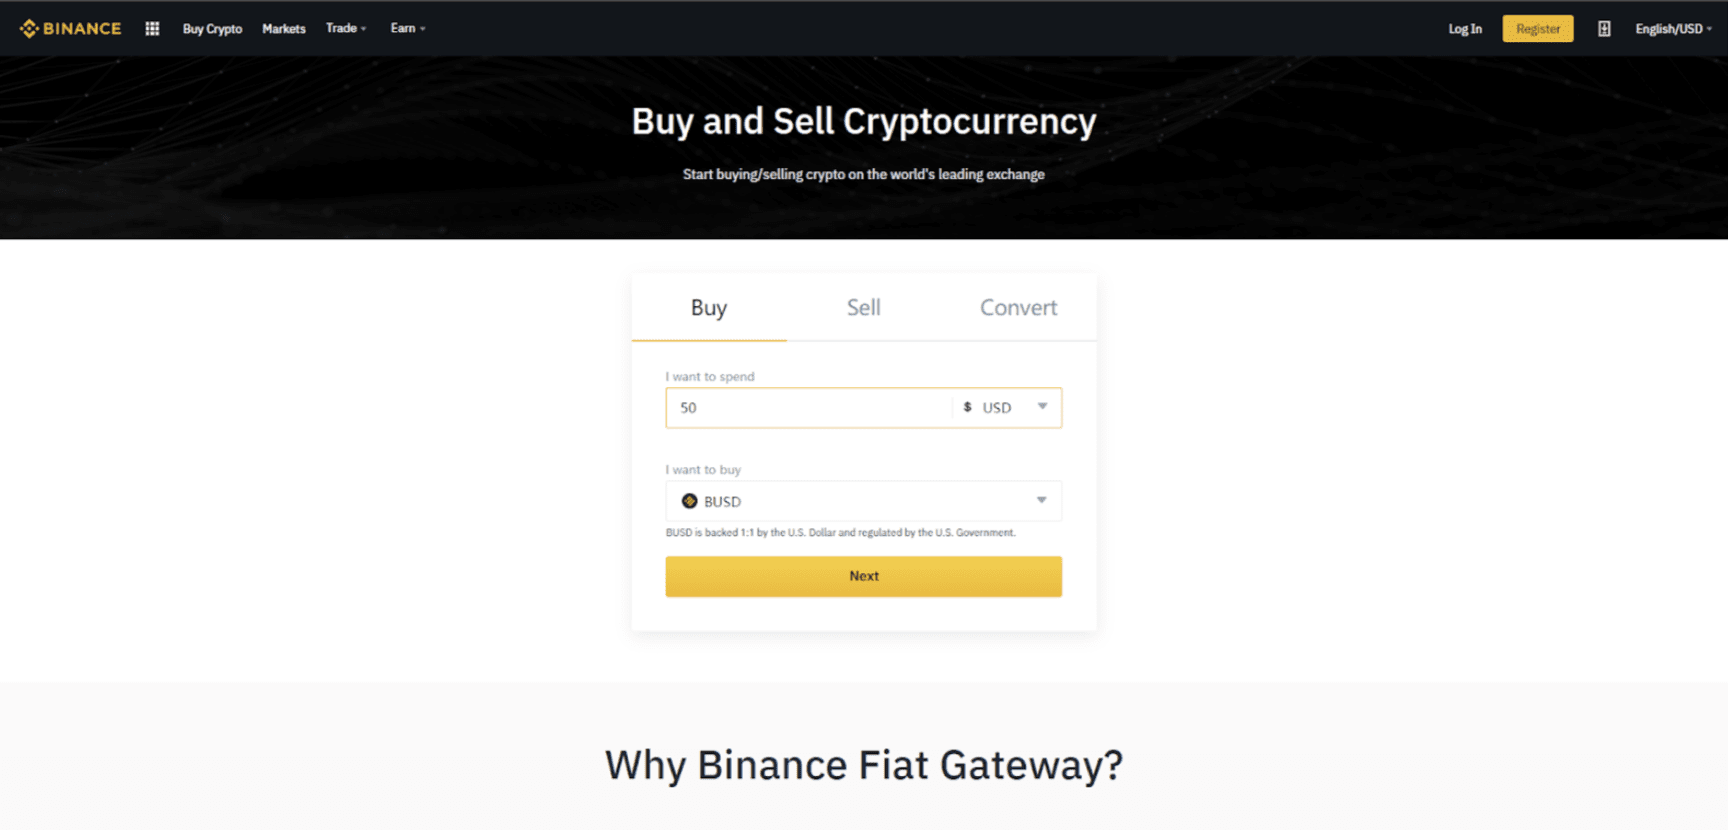 Convert Cash to BUSD to Earn up to 8% InterestCryptocurrency Trading Signals, Strategies & Templates   DexStrats